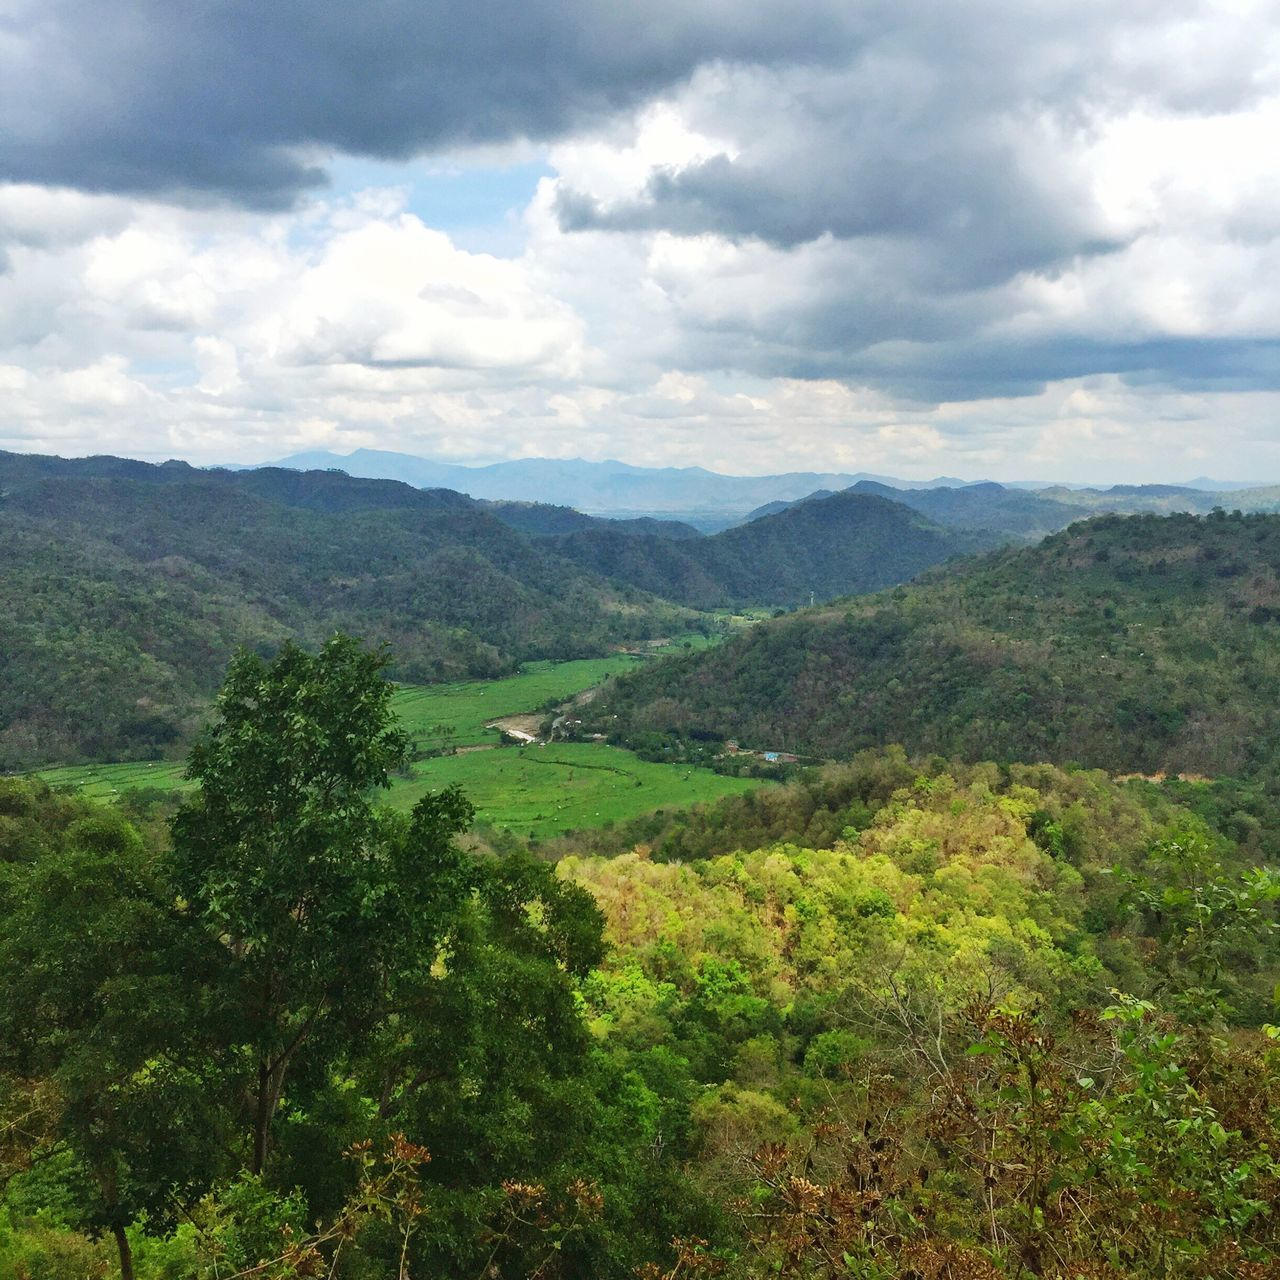 Wawo village bima Tranquil Scene Scenics Landscape Beauty In Nature Mountain Range High Angle View Cloudy Green Tranquility Tree Sky IPhoneography Iphonephotography Iphonesia Iphone6